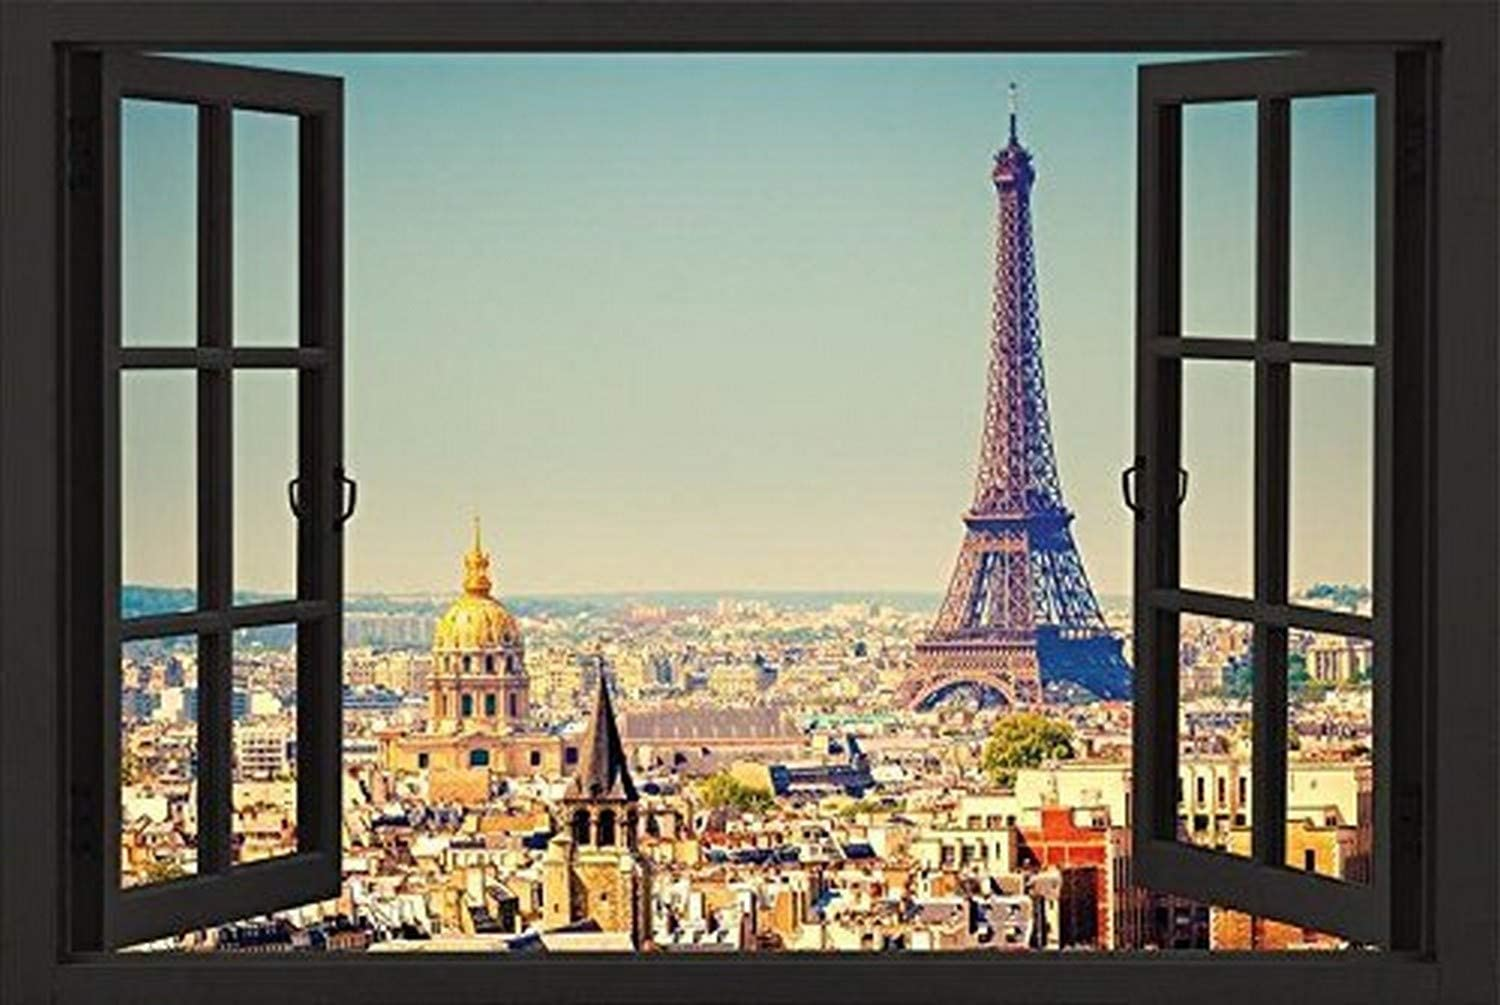 Buyartforless Paris Open Window Skyline 36x24 Eiffel Tower Art Print Poster